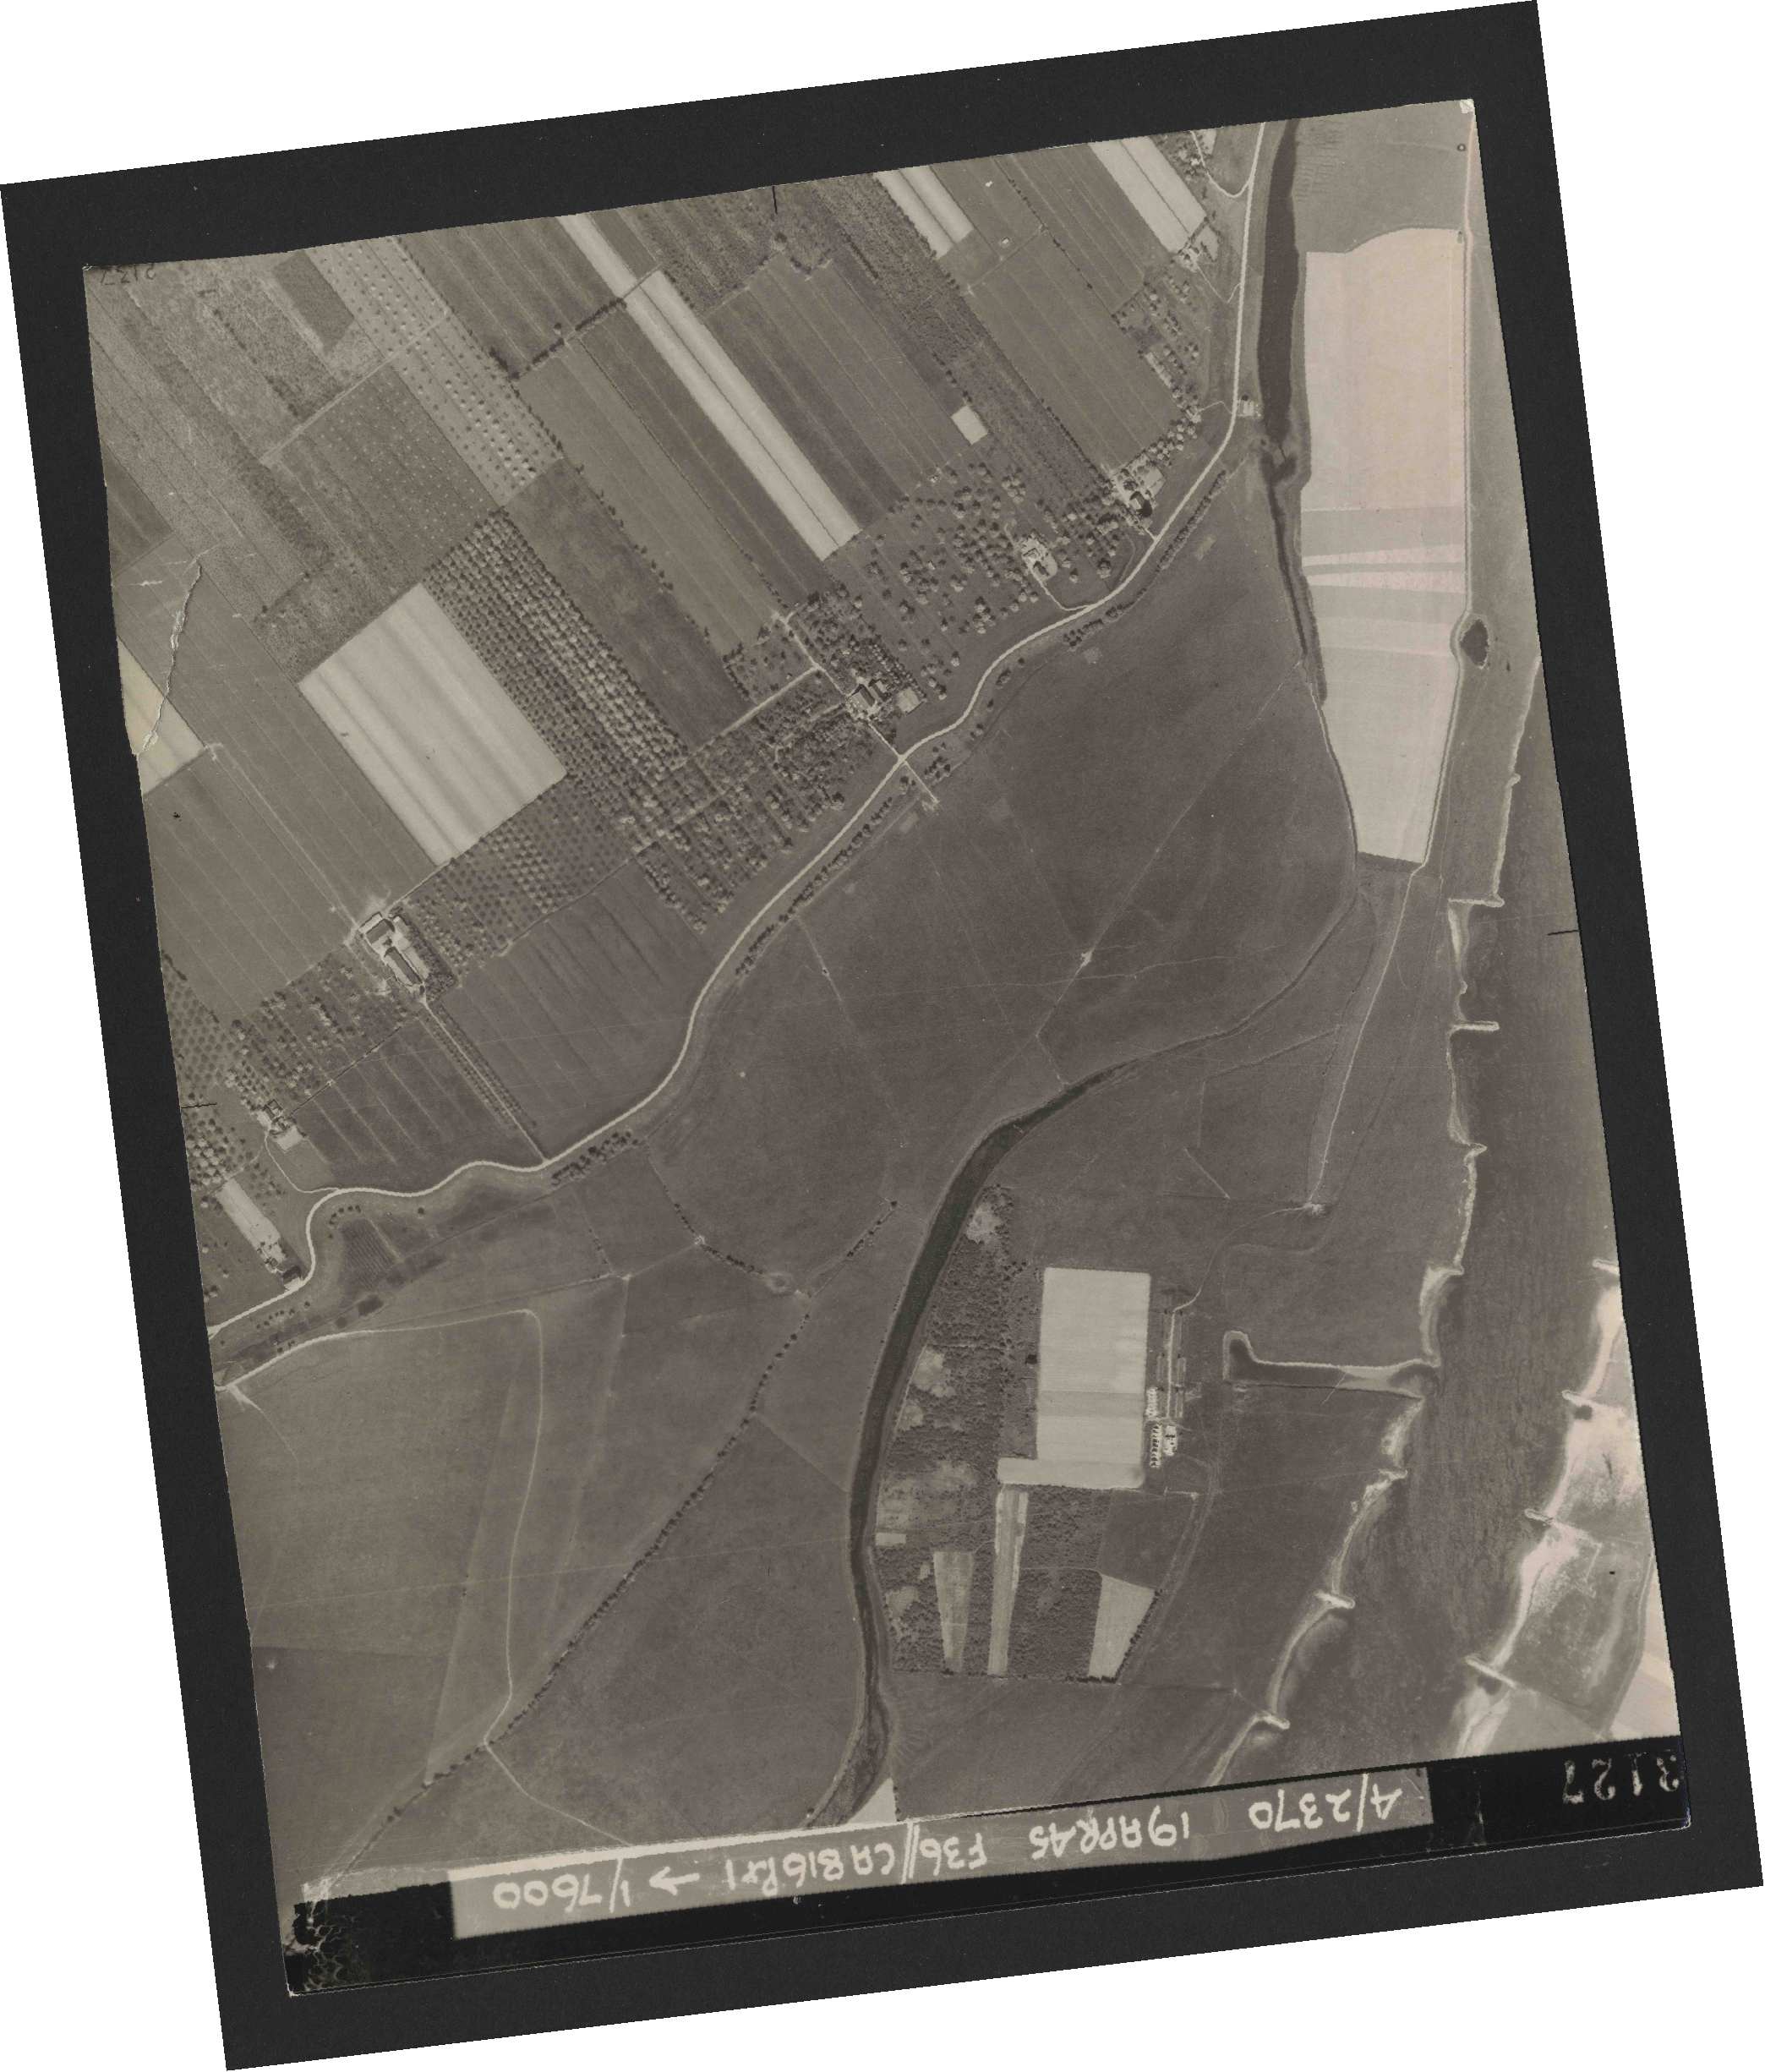 Collection RAF aerial photos 1940-1945 - flight 109, run 04, photo 3127